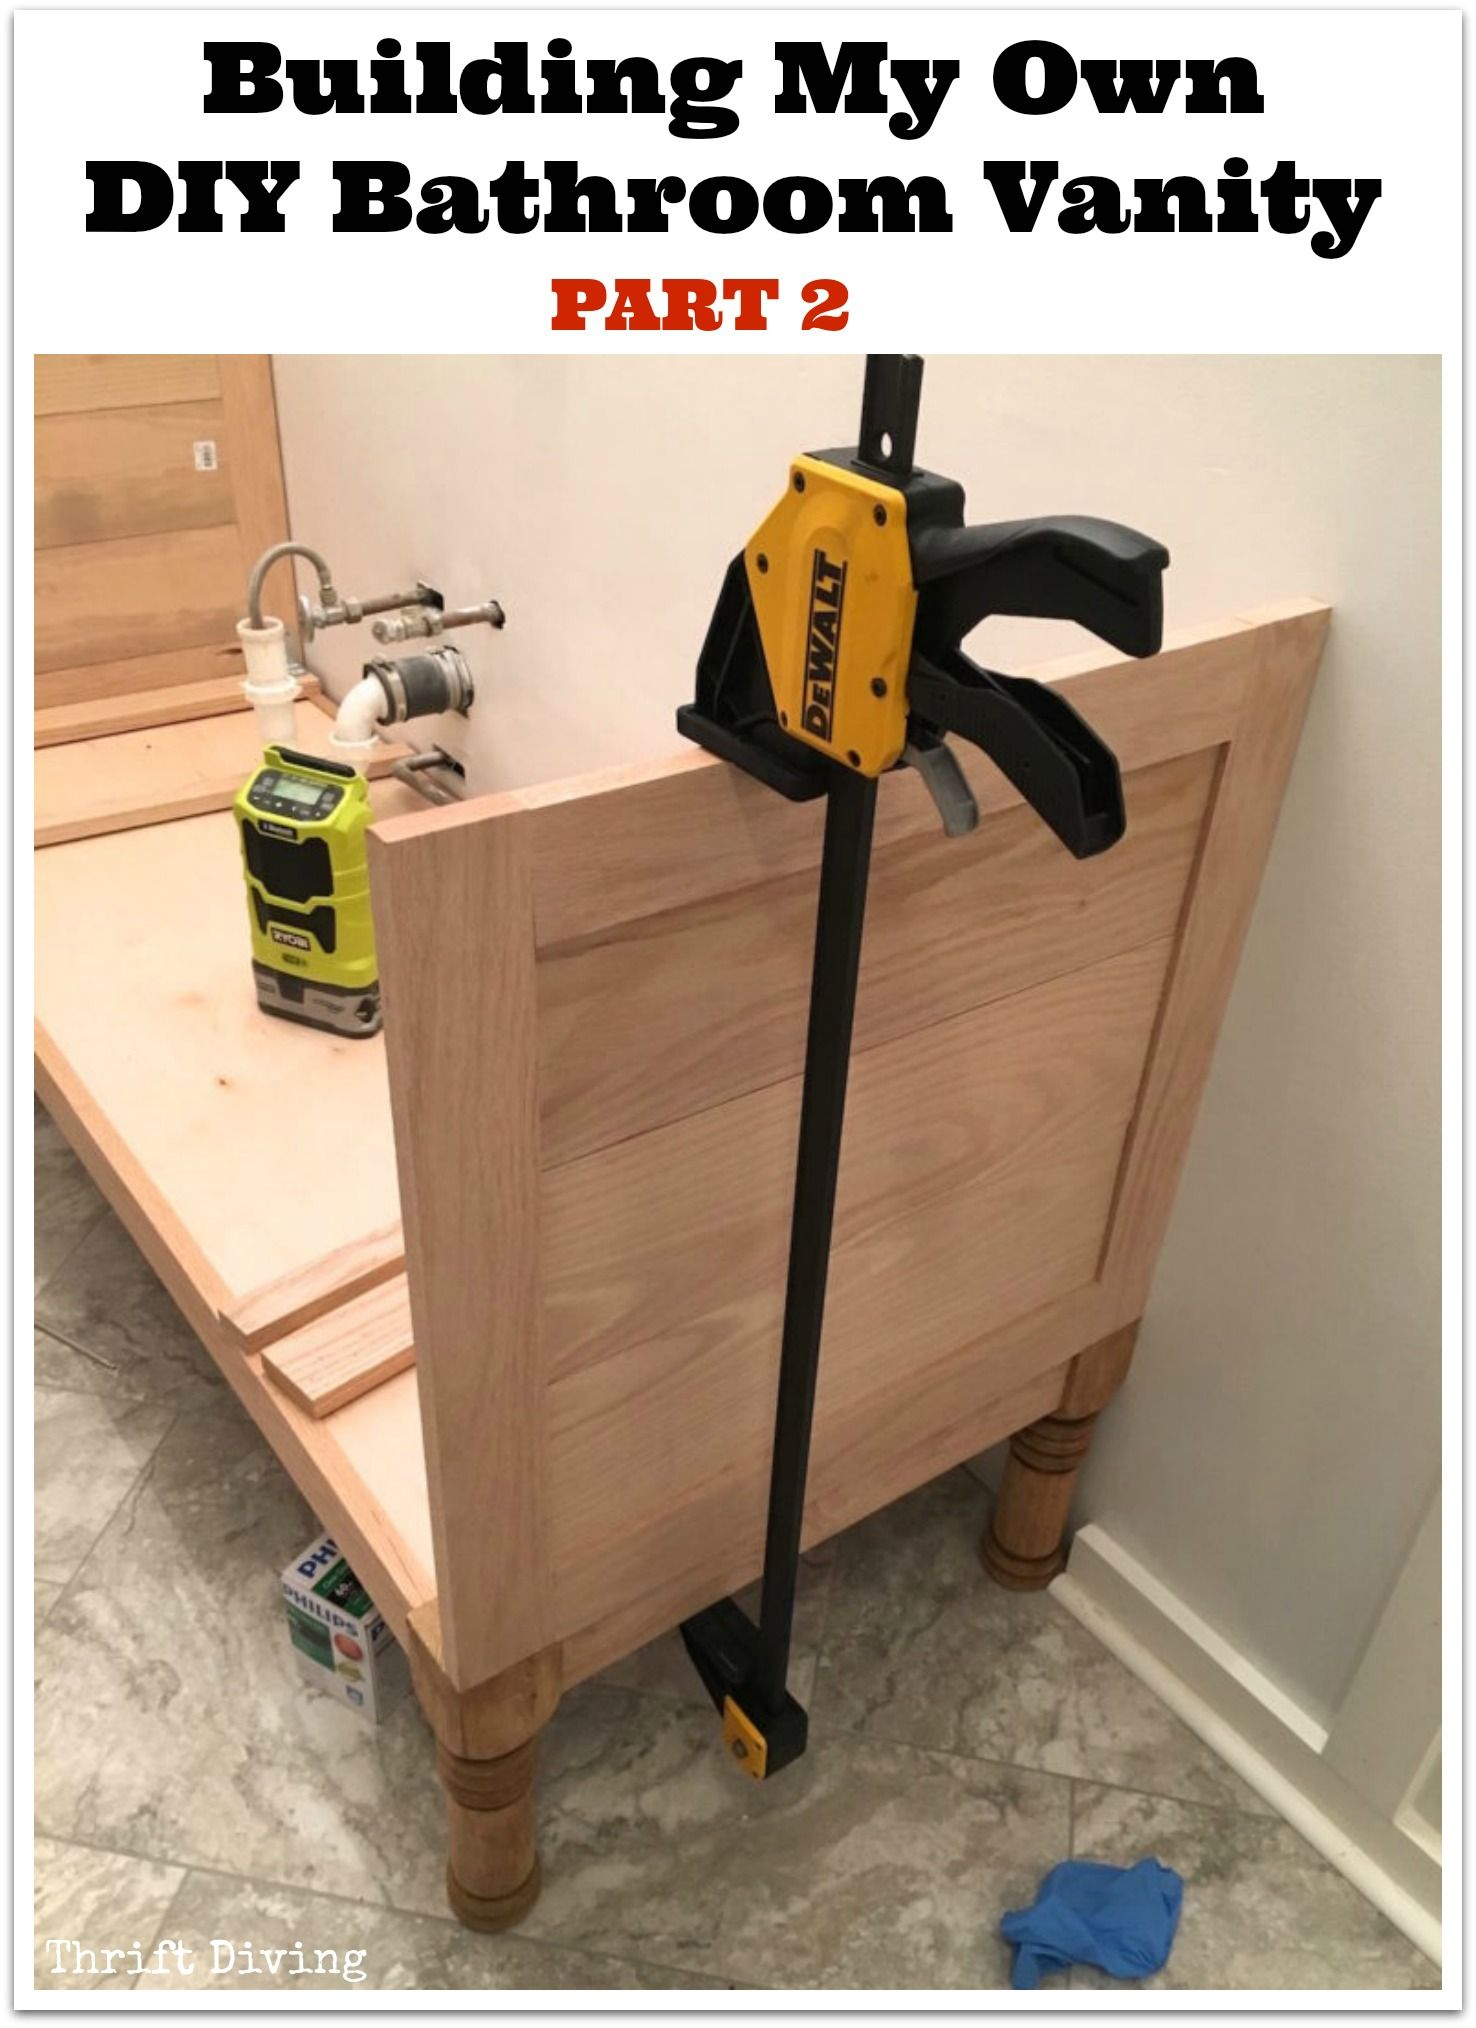 Build A 60 Inch Diy Bathroom Vanity Part 2 Attaching